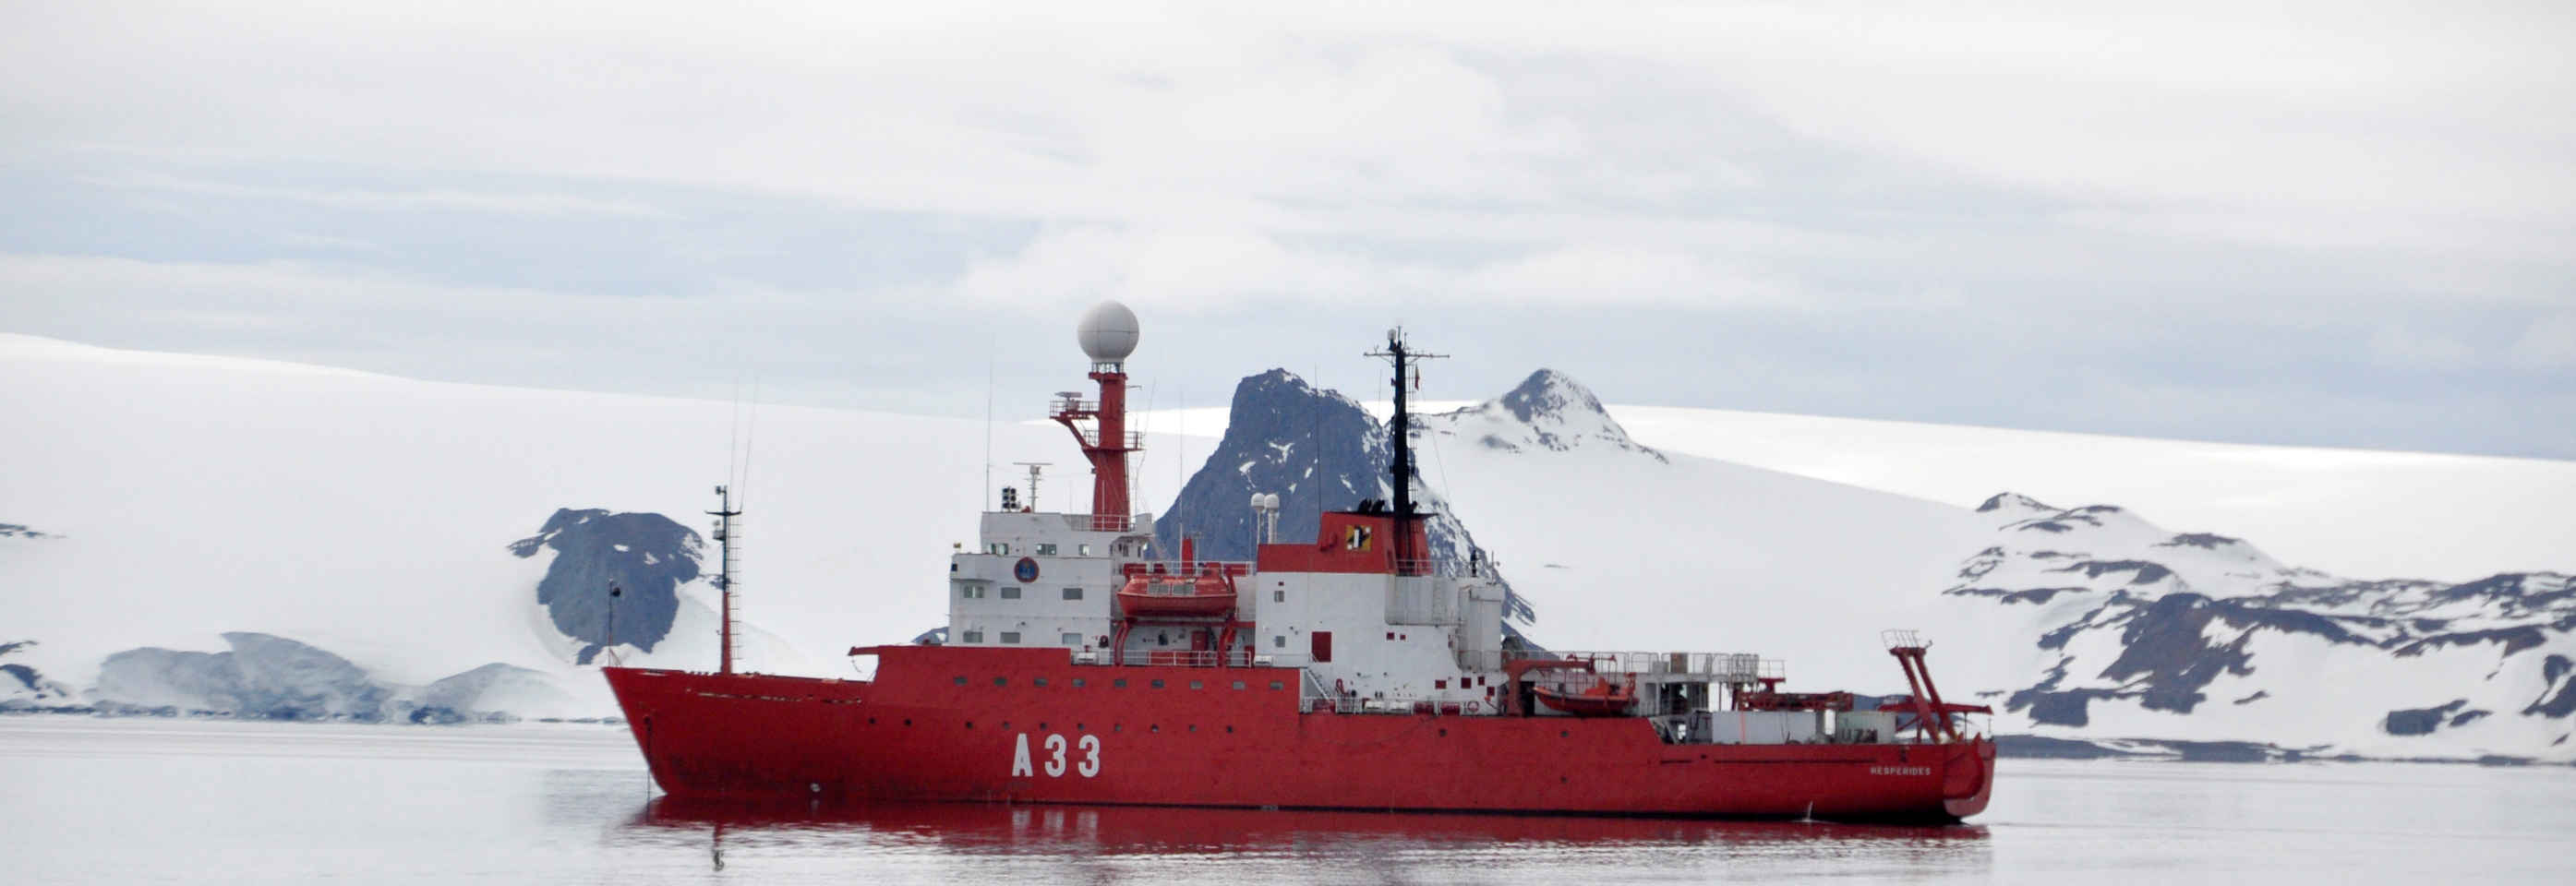 The Oceanographic Research Vessel Hespérides